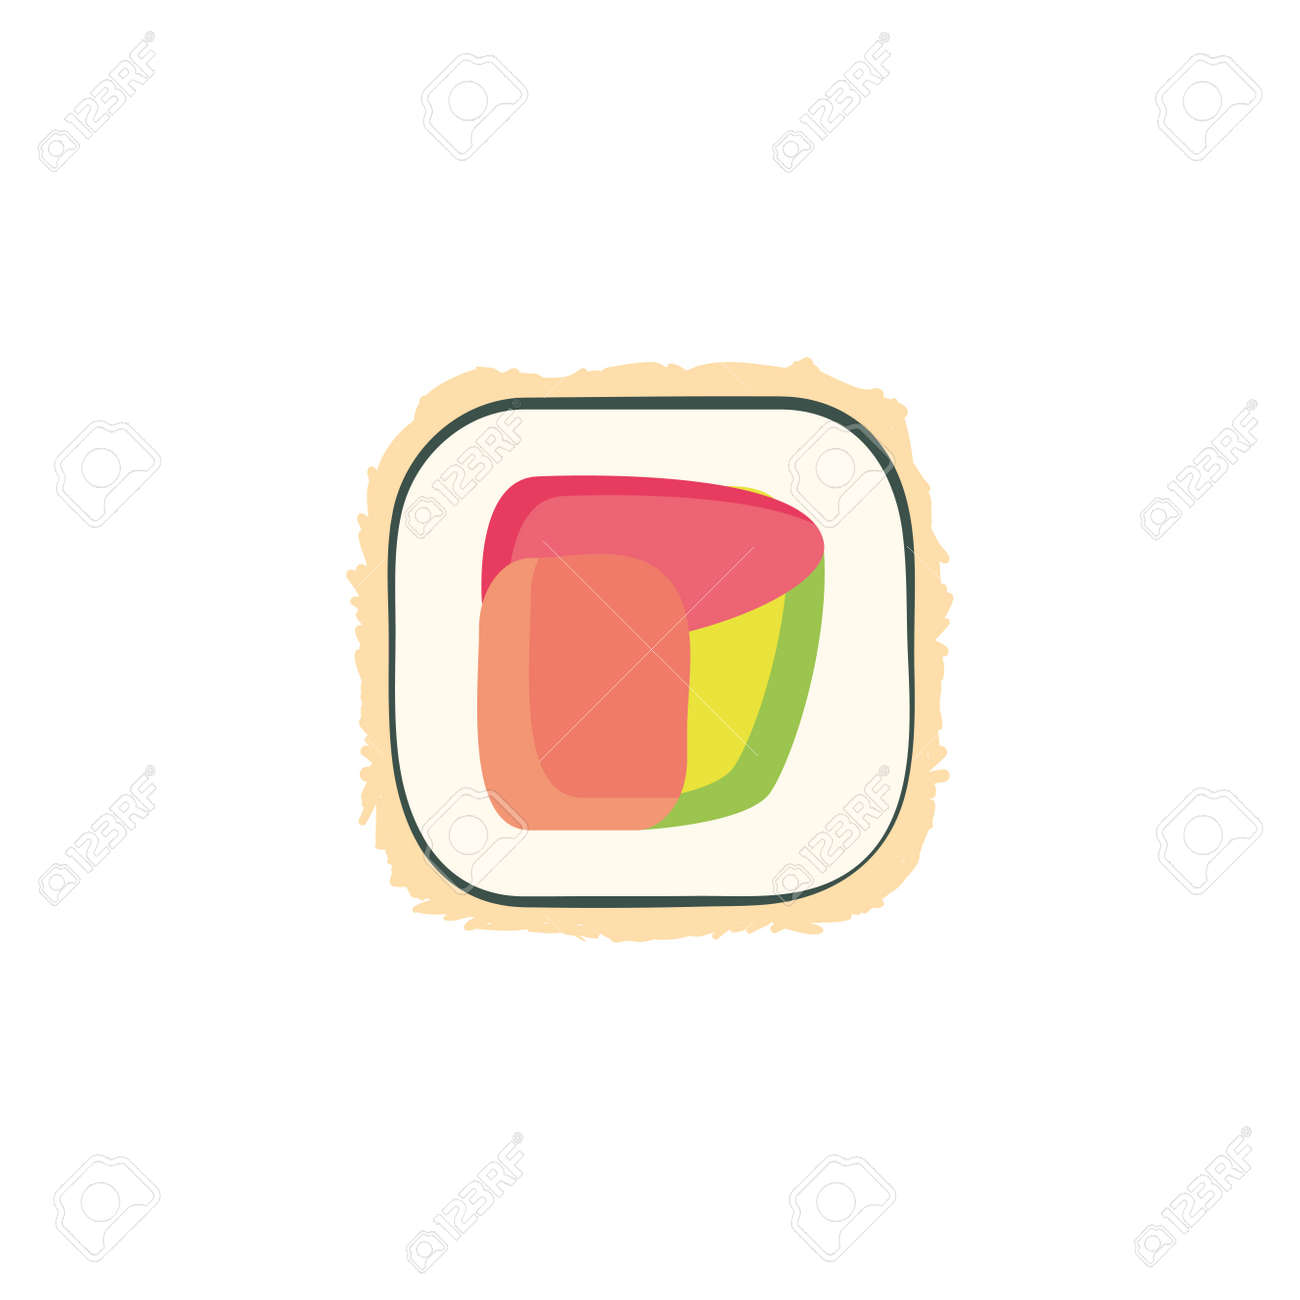 sushi icon design, Eat food restaurant menu dinner lunch cooking and meal theme Vector illustration - 134356537